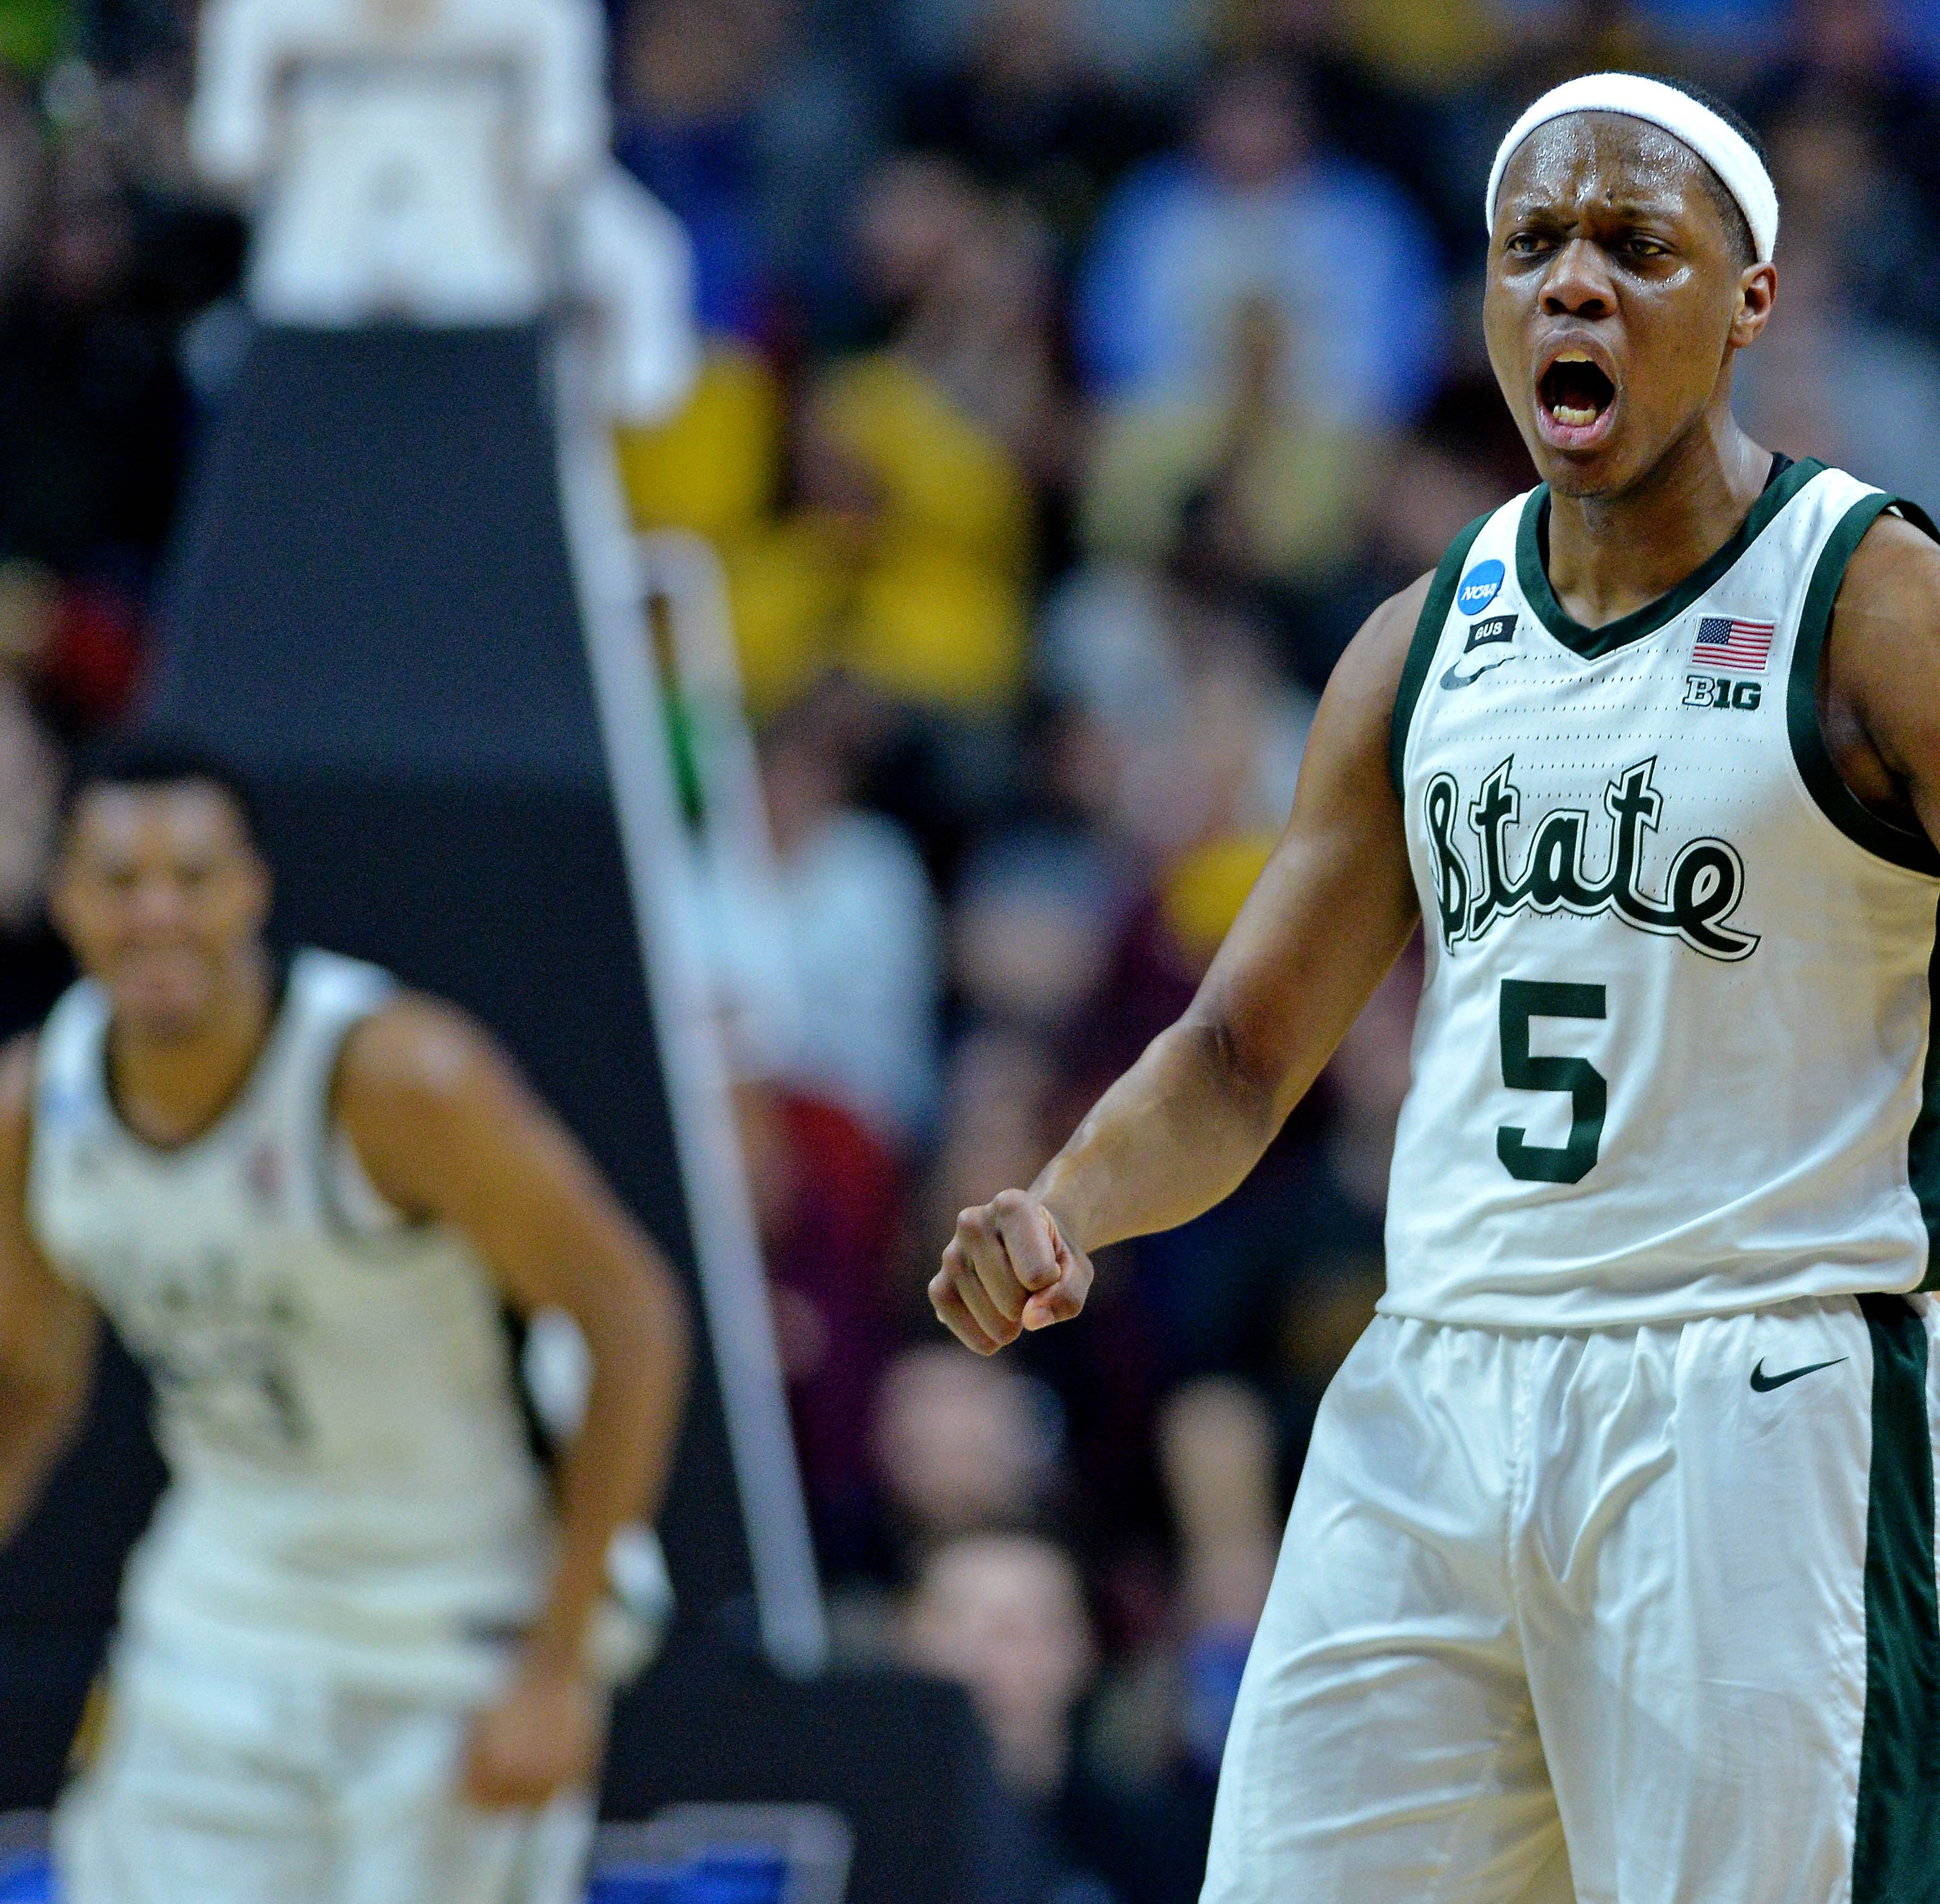 Michigan State tabbed a No. 1 seed in new ESPN Bracketology rankings